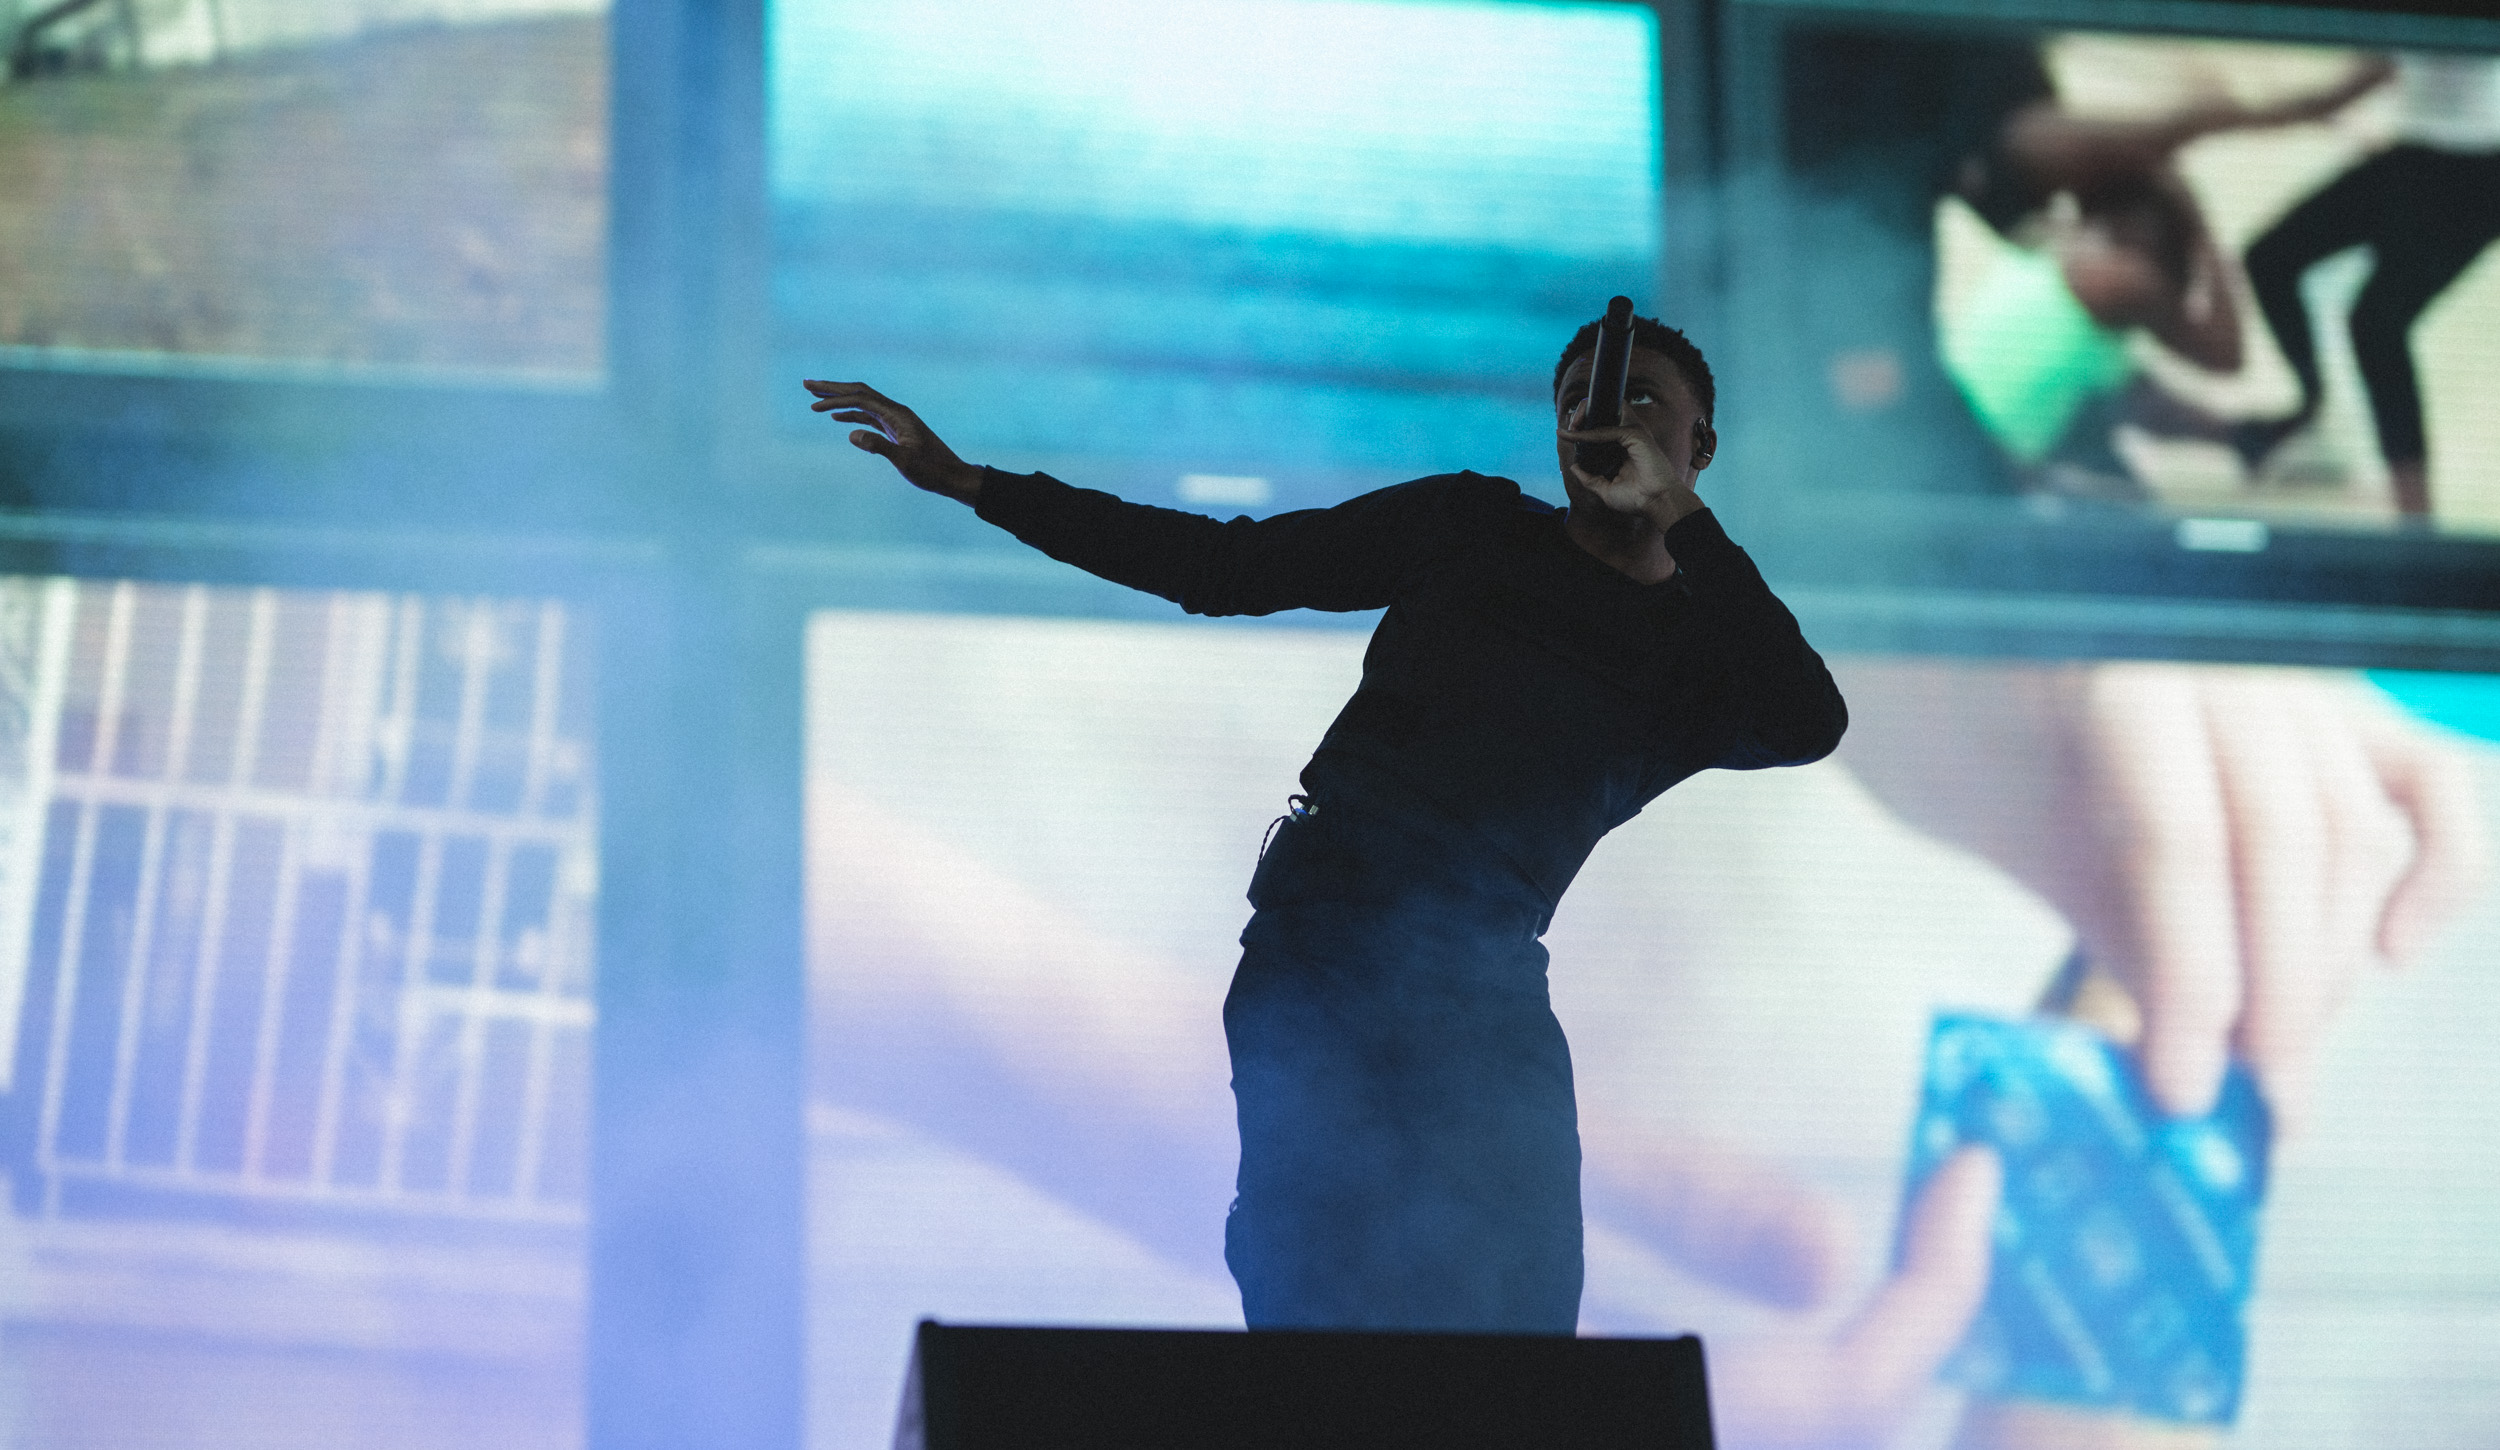 Vince Staples at Coachella 2018 - photographed with a Sony a7R III - Sigma 85mm f/1.4 Art - Sigma MC‑11 Mount Converter